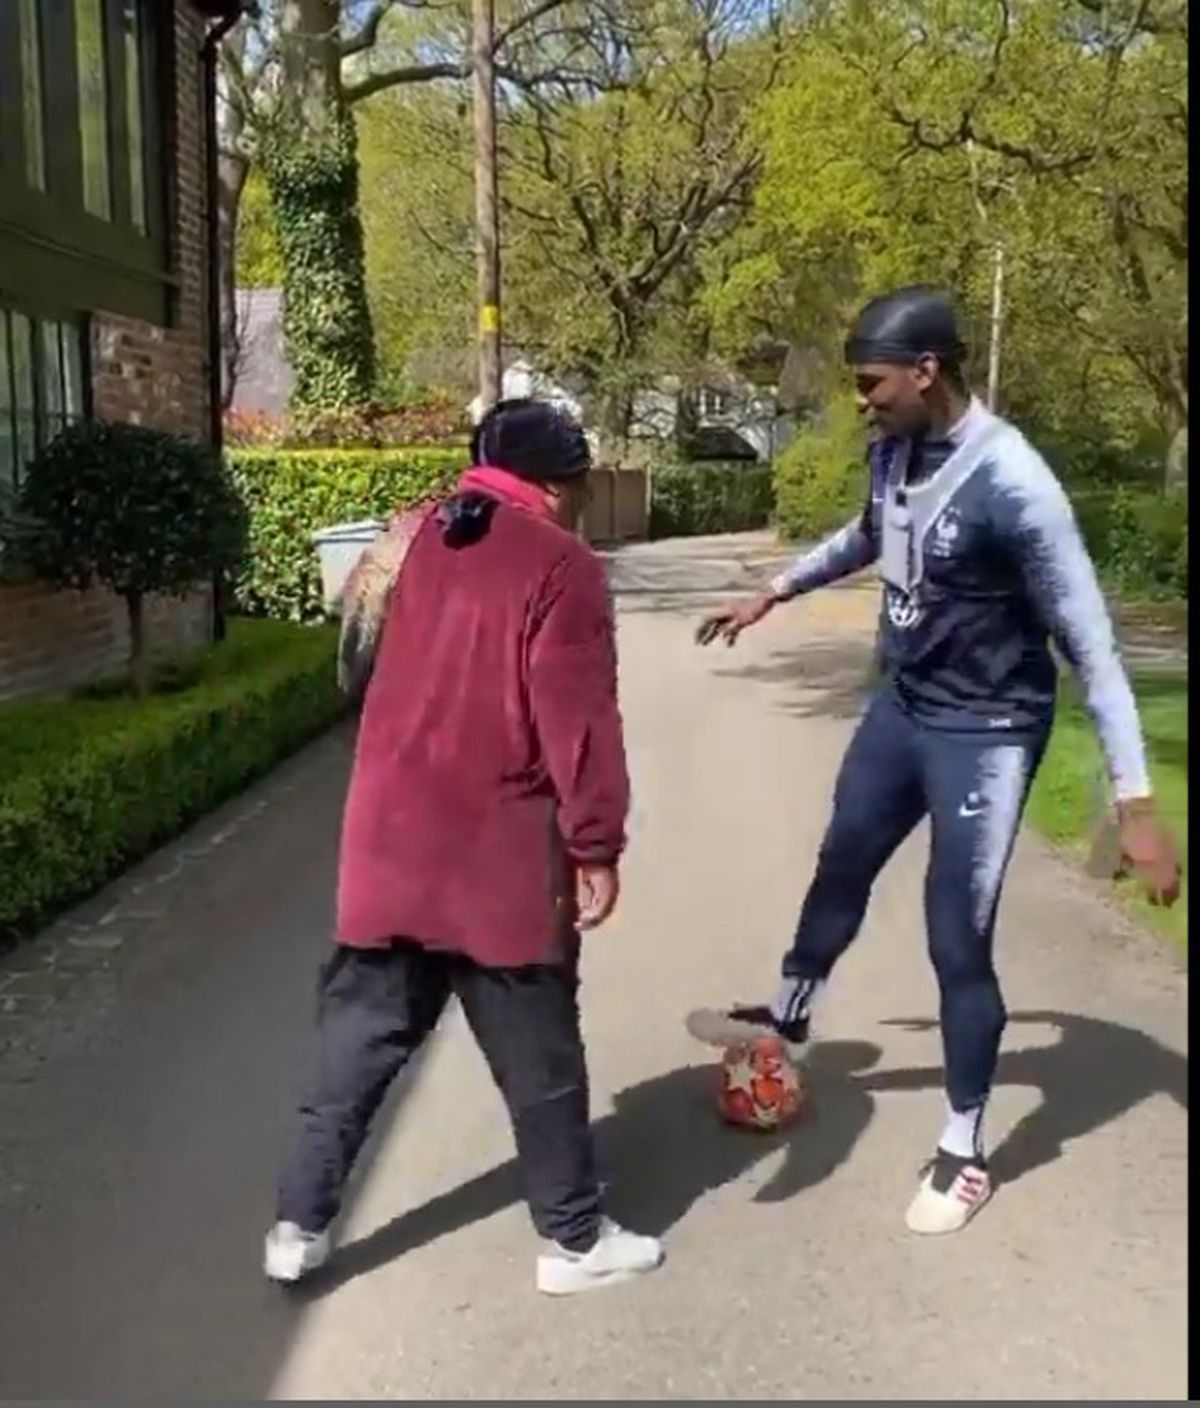 Paul Pogba wearing the vest during the Instagram video